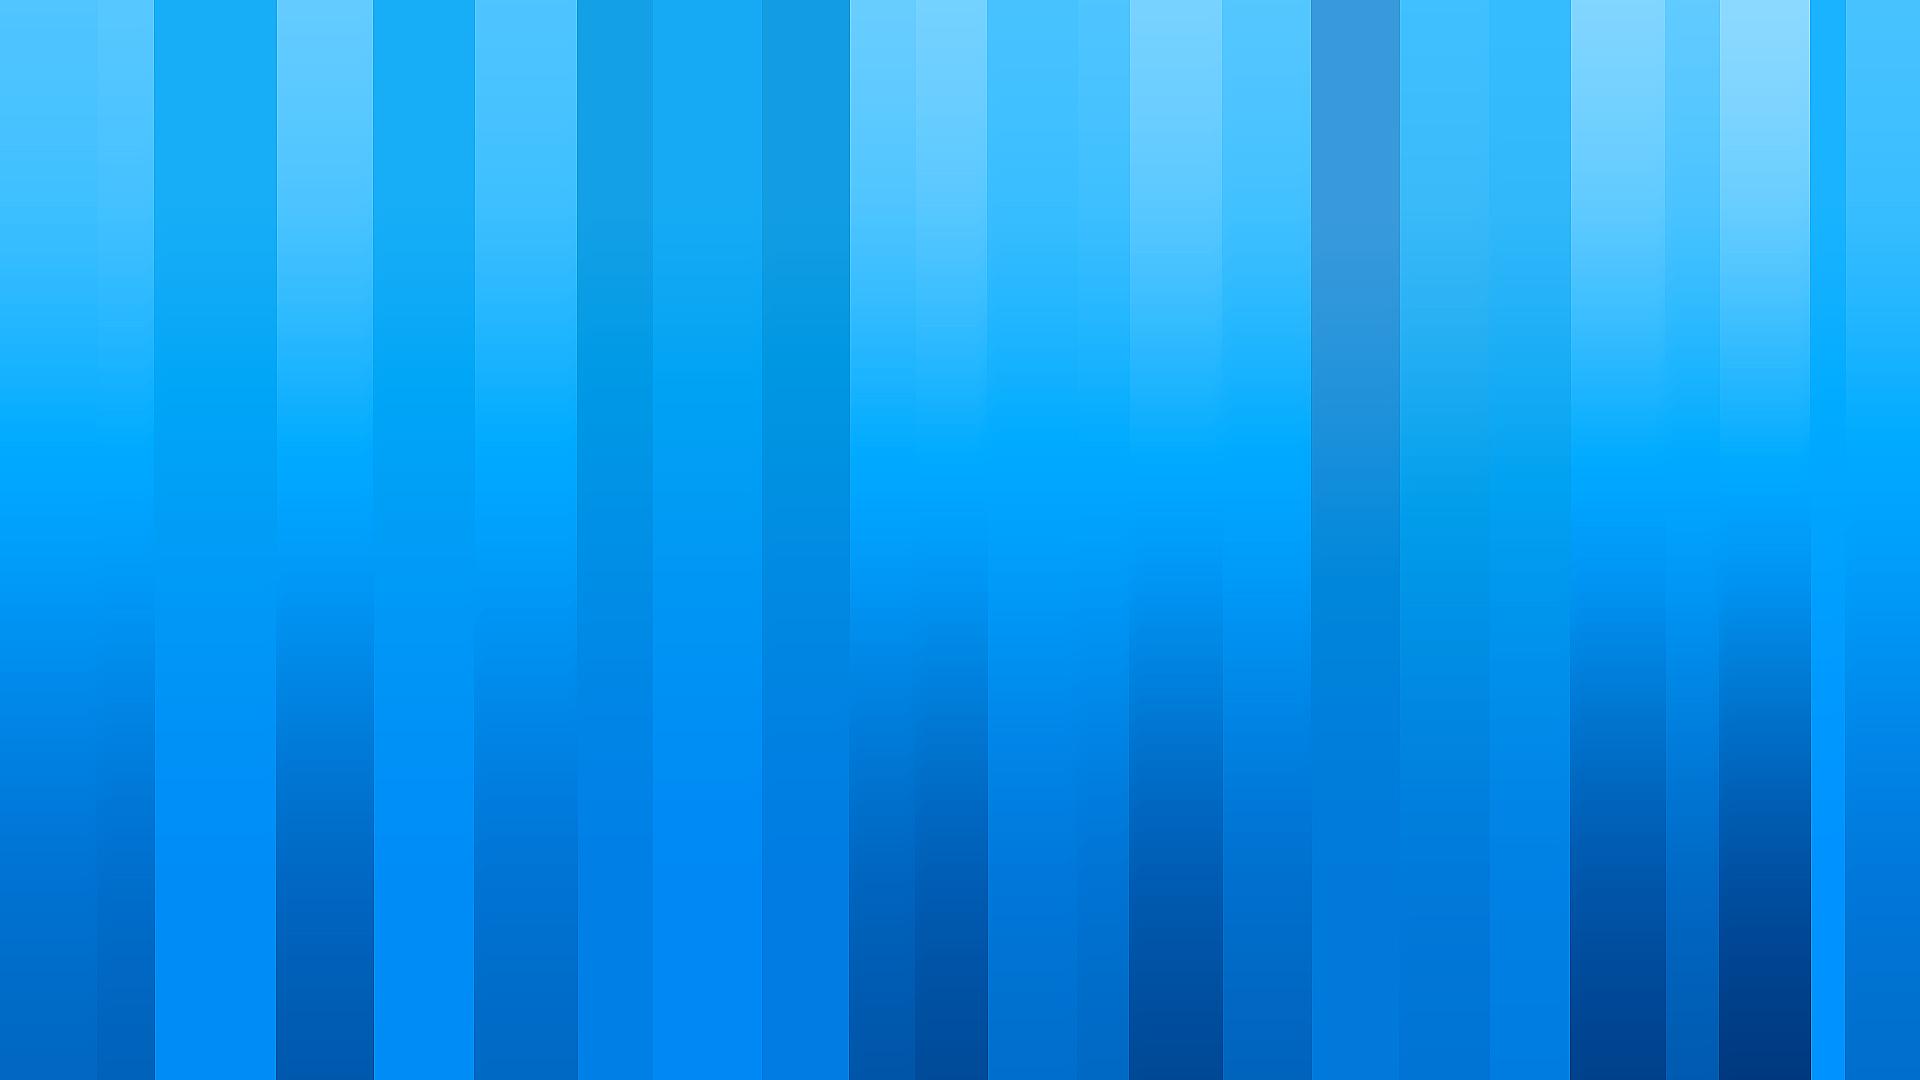 Blue wallpaper 1920x1080 39979